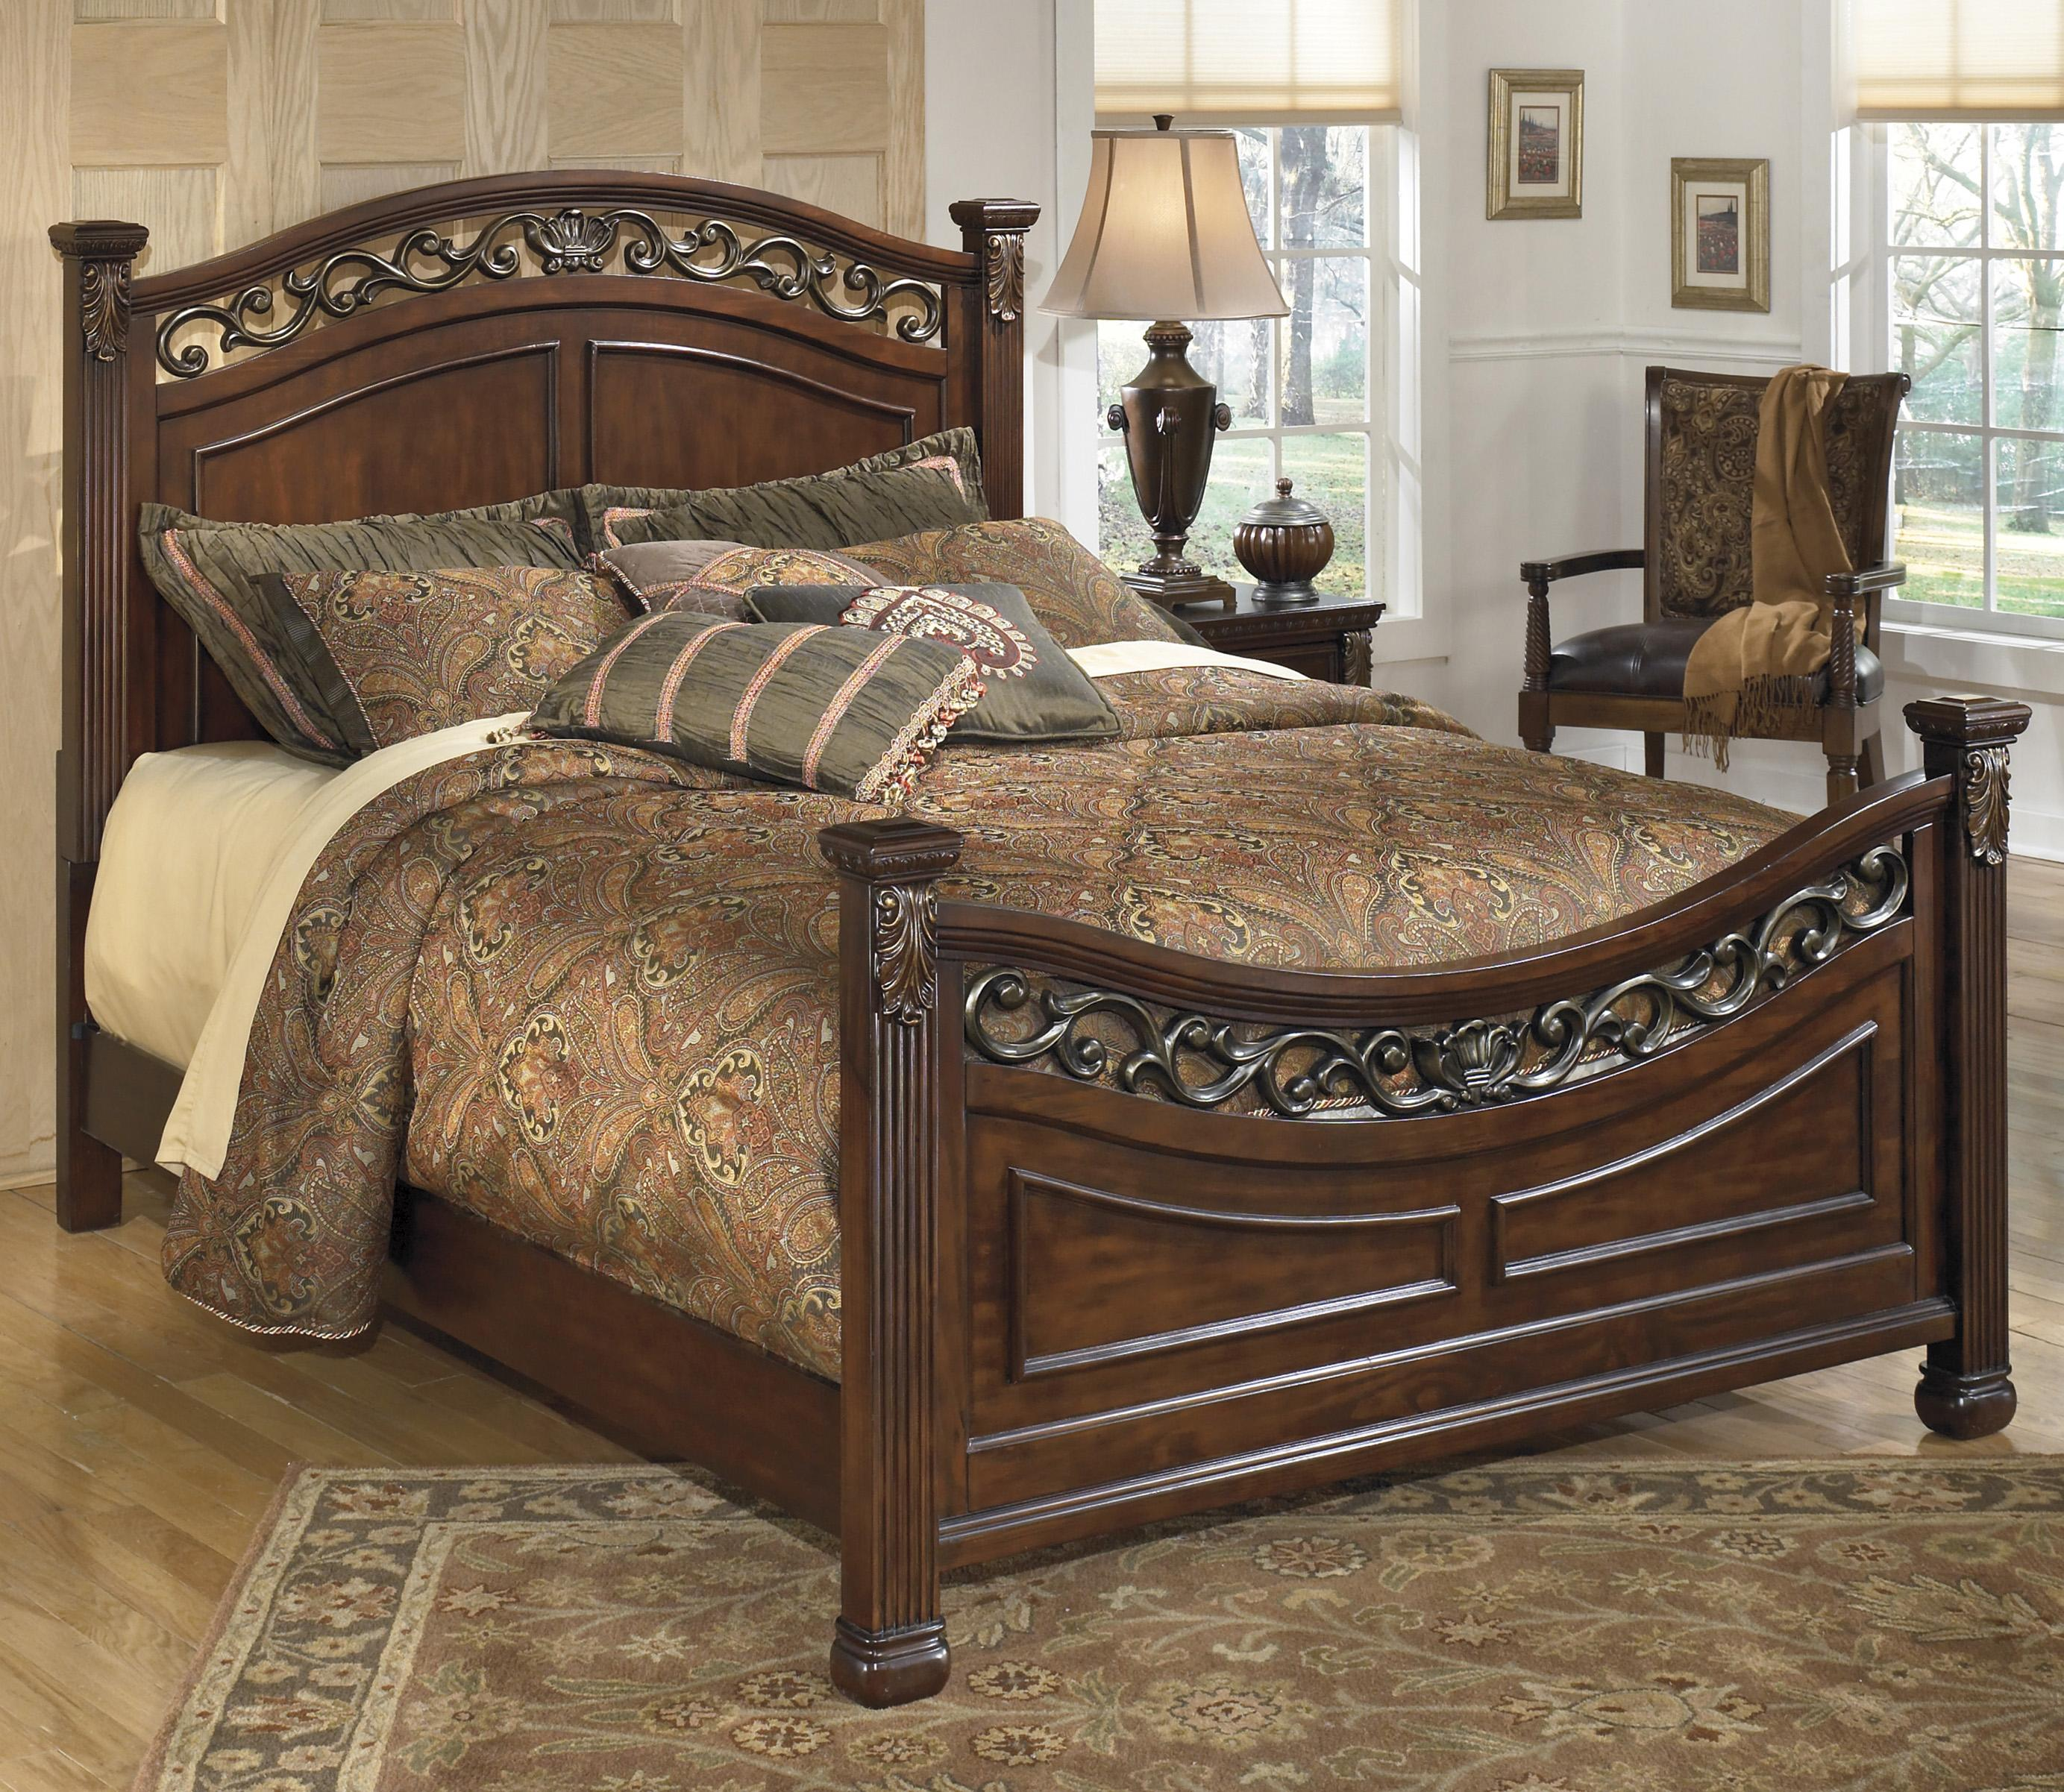 Traditional queen panel bed with decorative headboard and Decorative headboards for beds